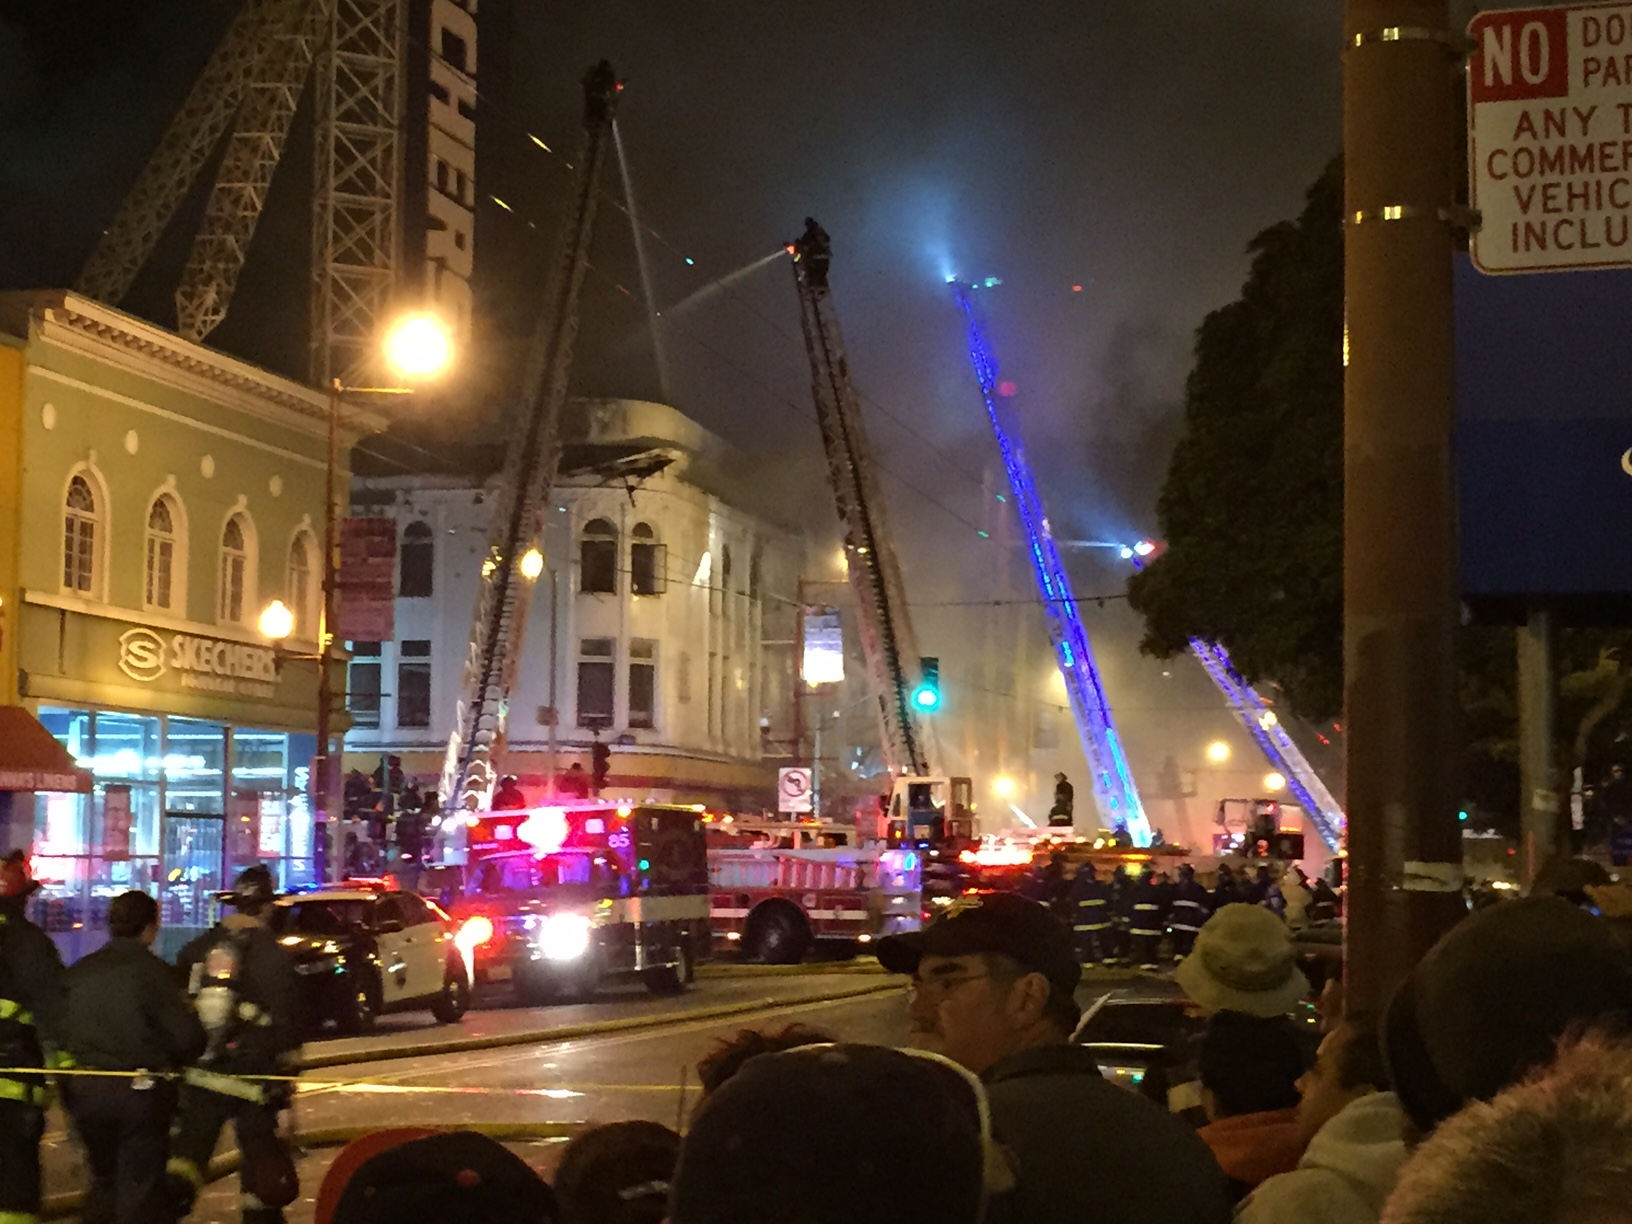 San Francisco firefighters at the scene of a four-alarm blaze Jan. 28 at 22nd and Mission streets. The blaze displaced about 65 residents of the building.